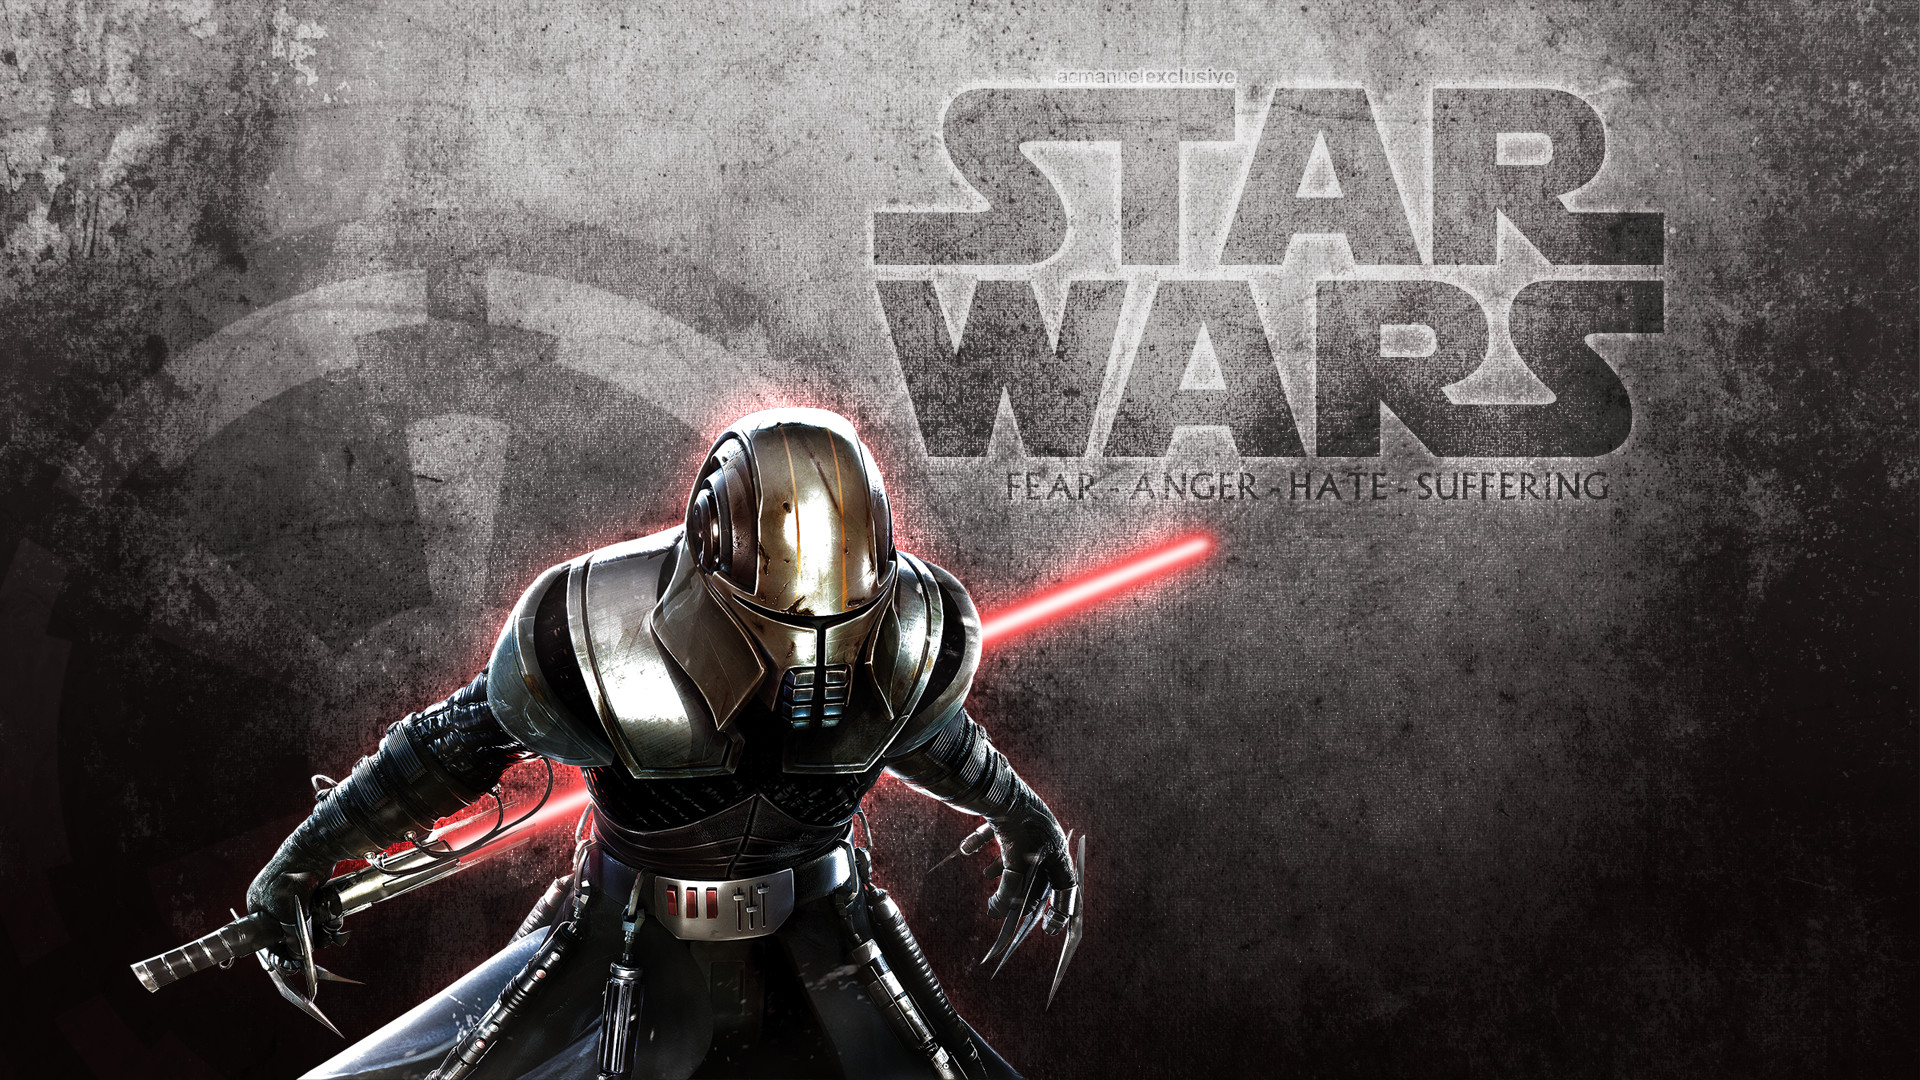 1920x1080 Star Wars Sith Wallpapers For Android